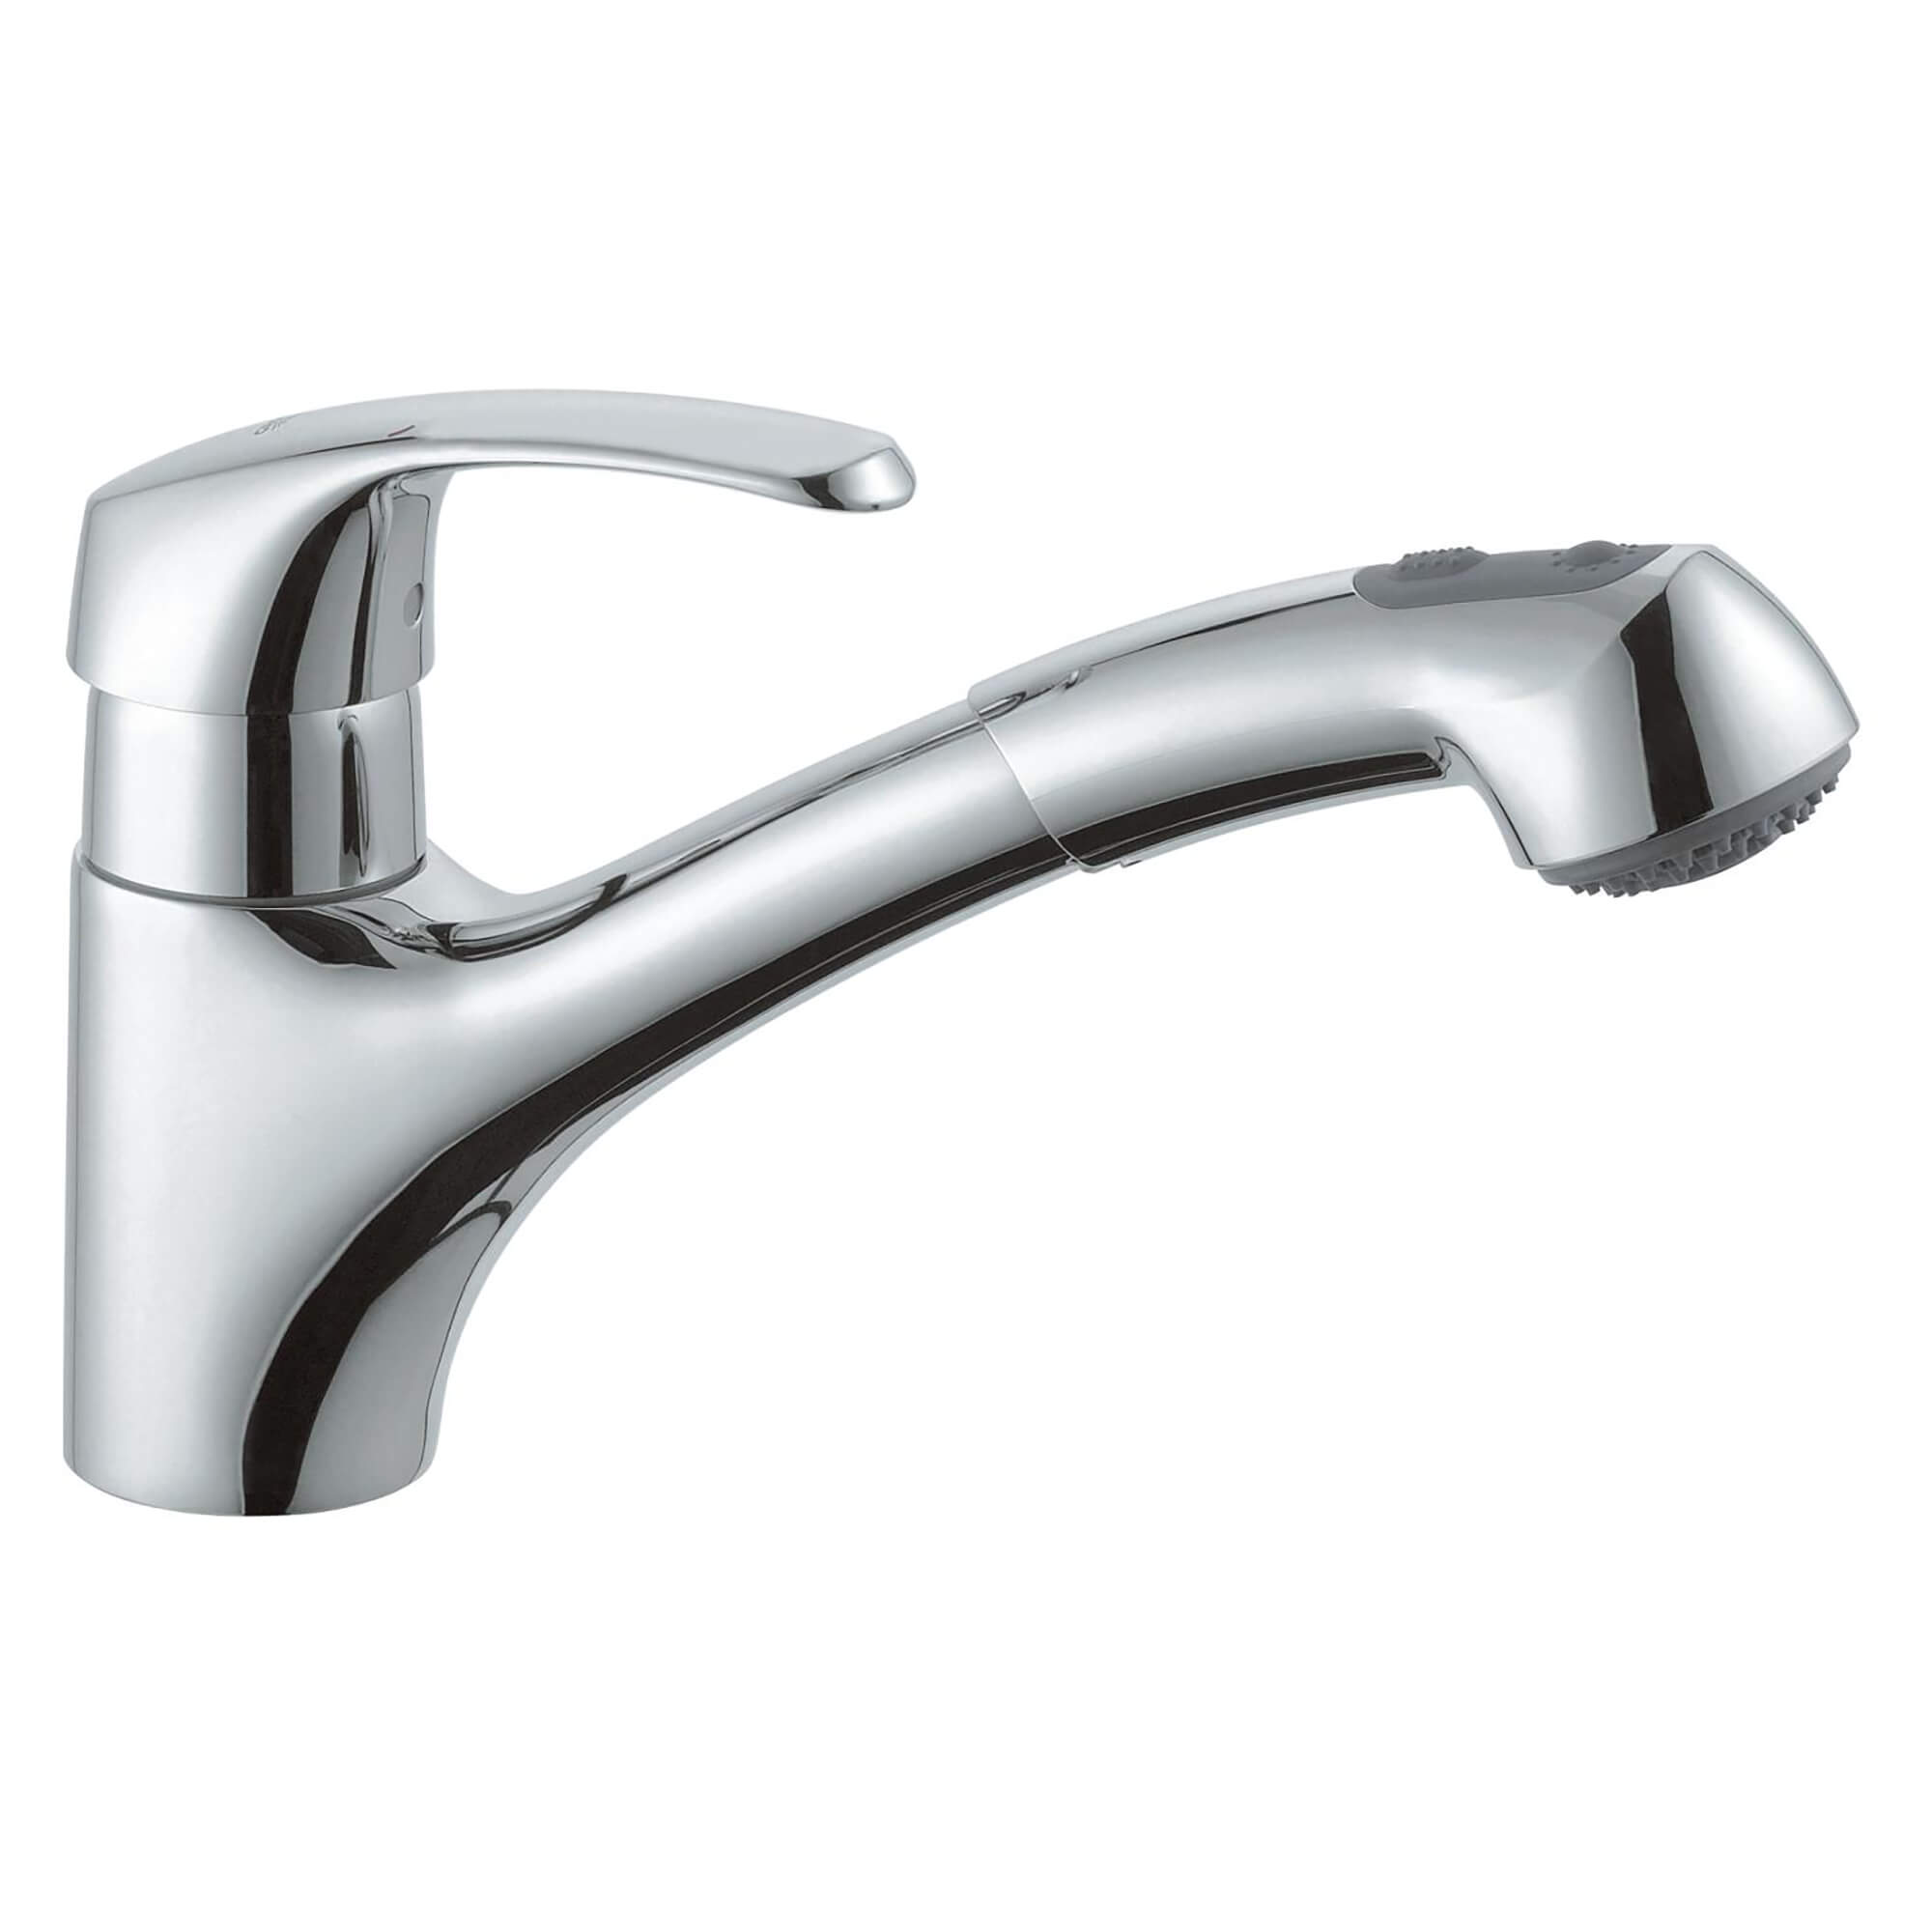 Single Handle Pull Out Kitchen Faucet Dual Spray 175 GPM GROHE CHROME